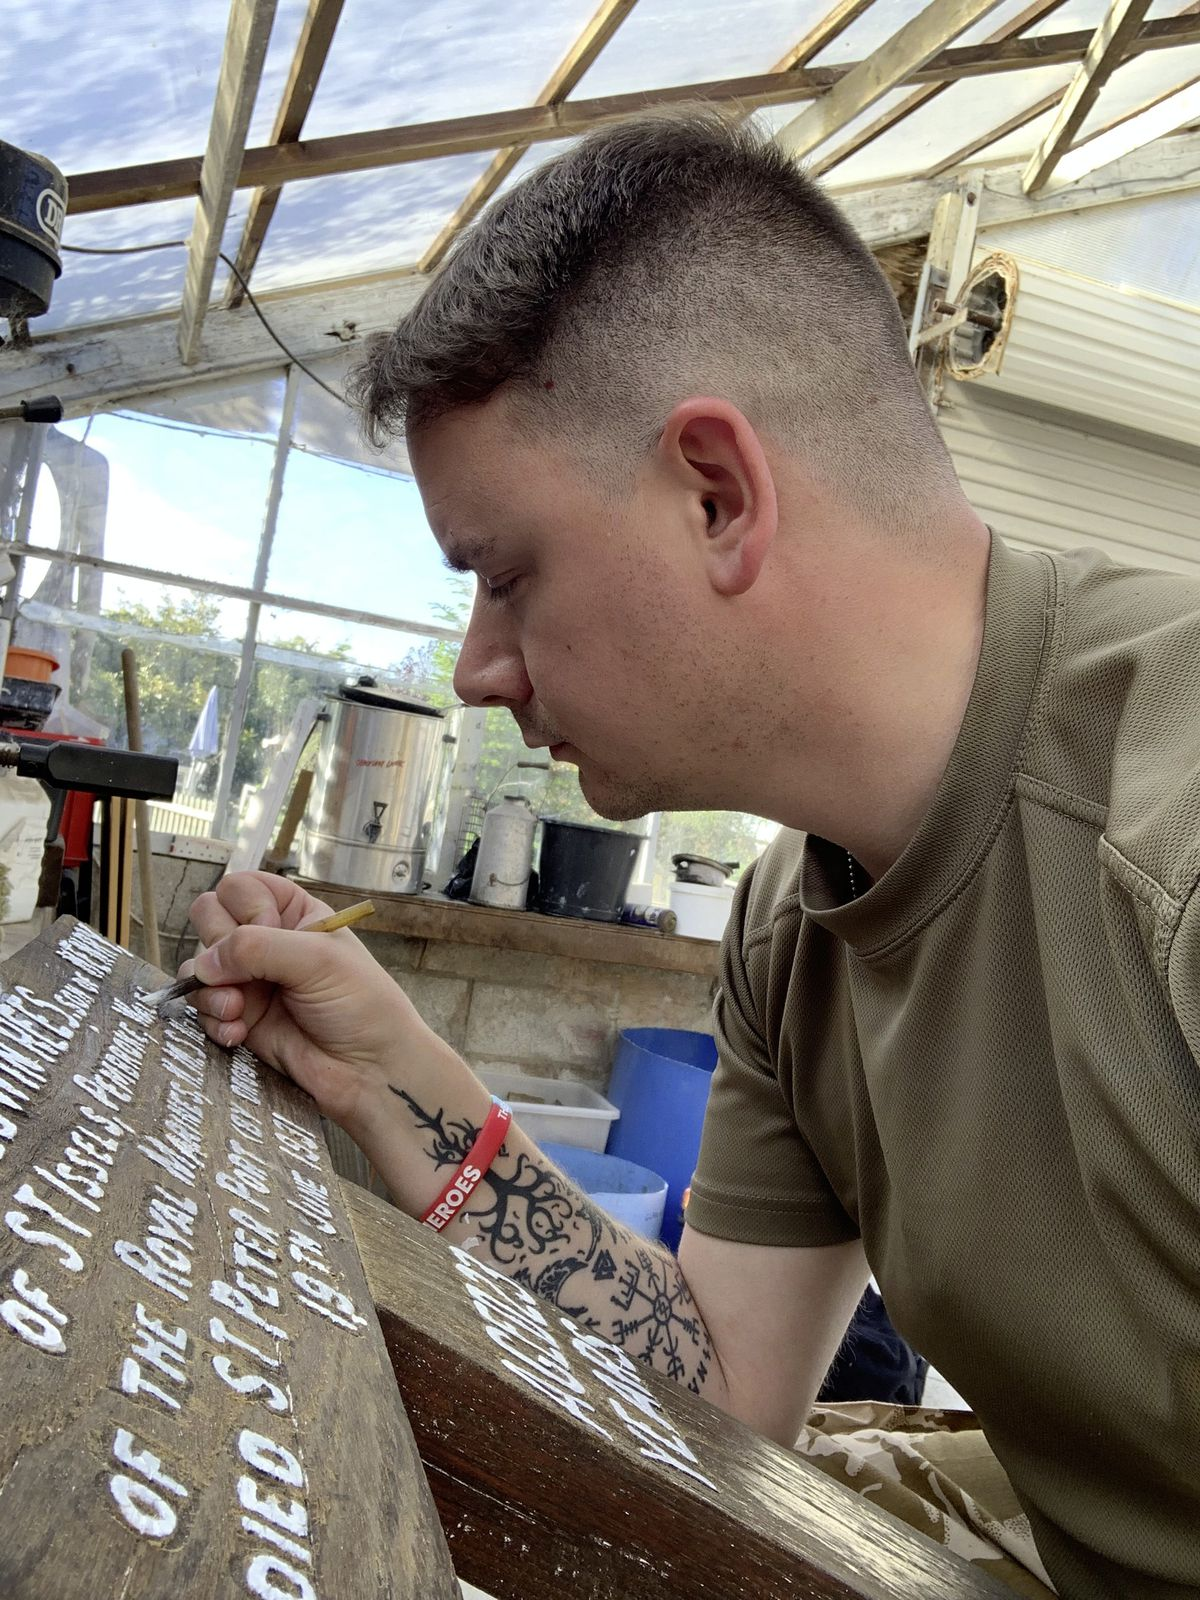 Matt Hill, a sergeant with the Guernsey Royal Marines Cadets, who says he has the marine corps in his blood, repainting the inscription on the cross.